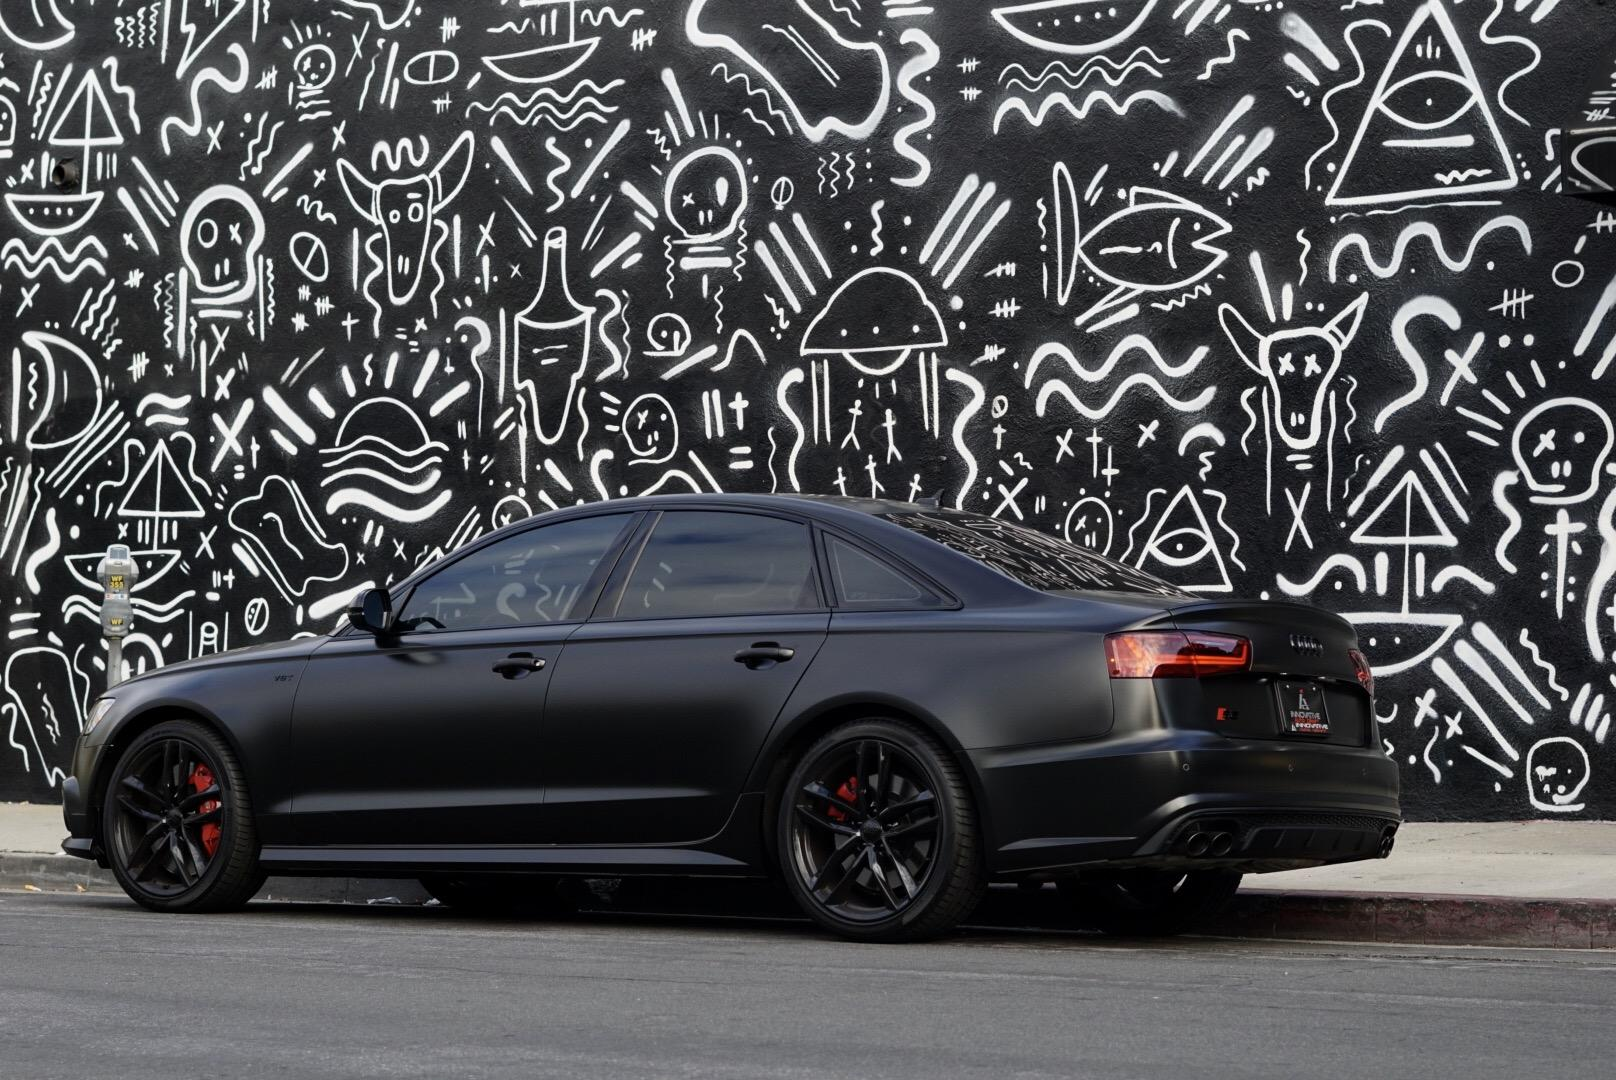 Audi S6 Black Www Pixshark Com Images Galleries With A